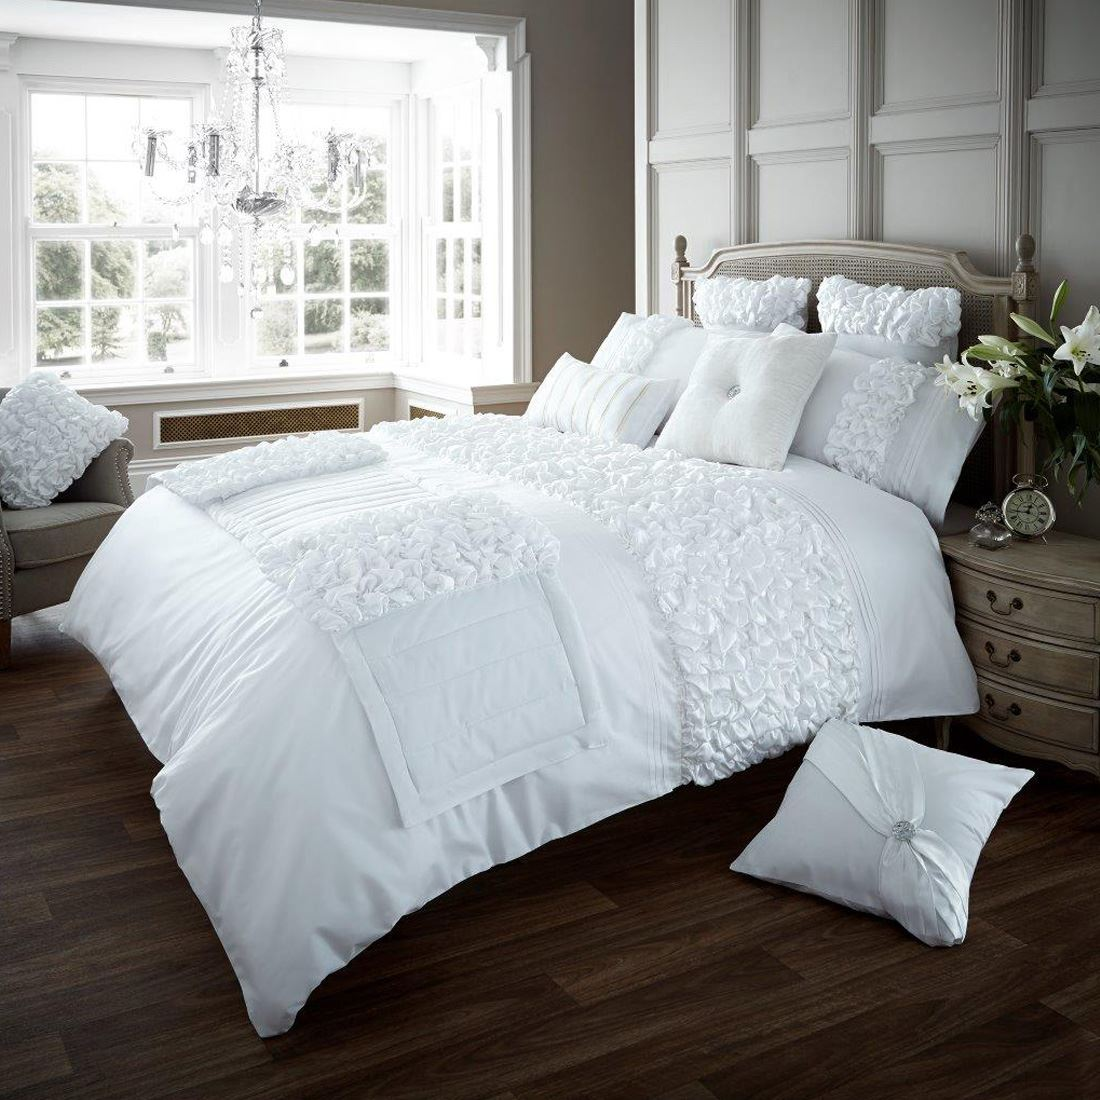 Verina Duvet Cover With Pillowcase Quilt Cover Bed Set